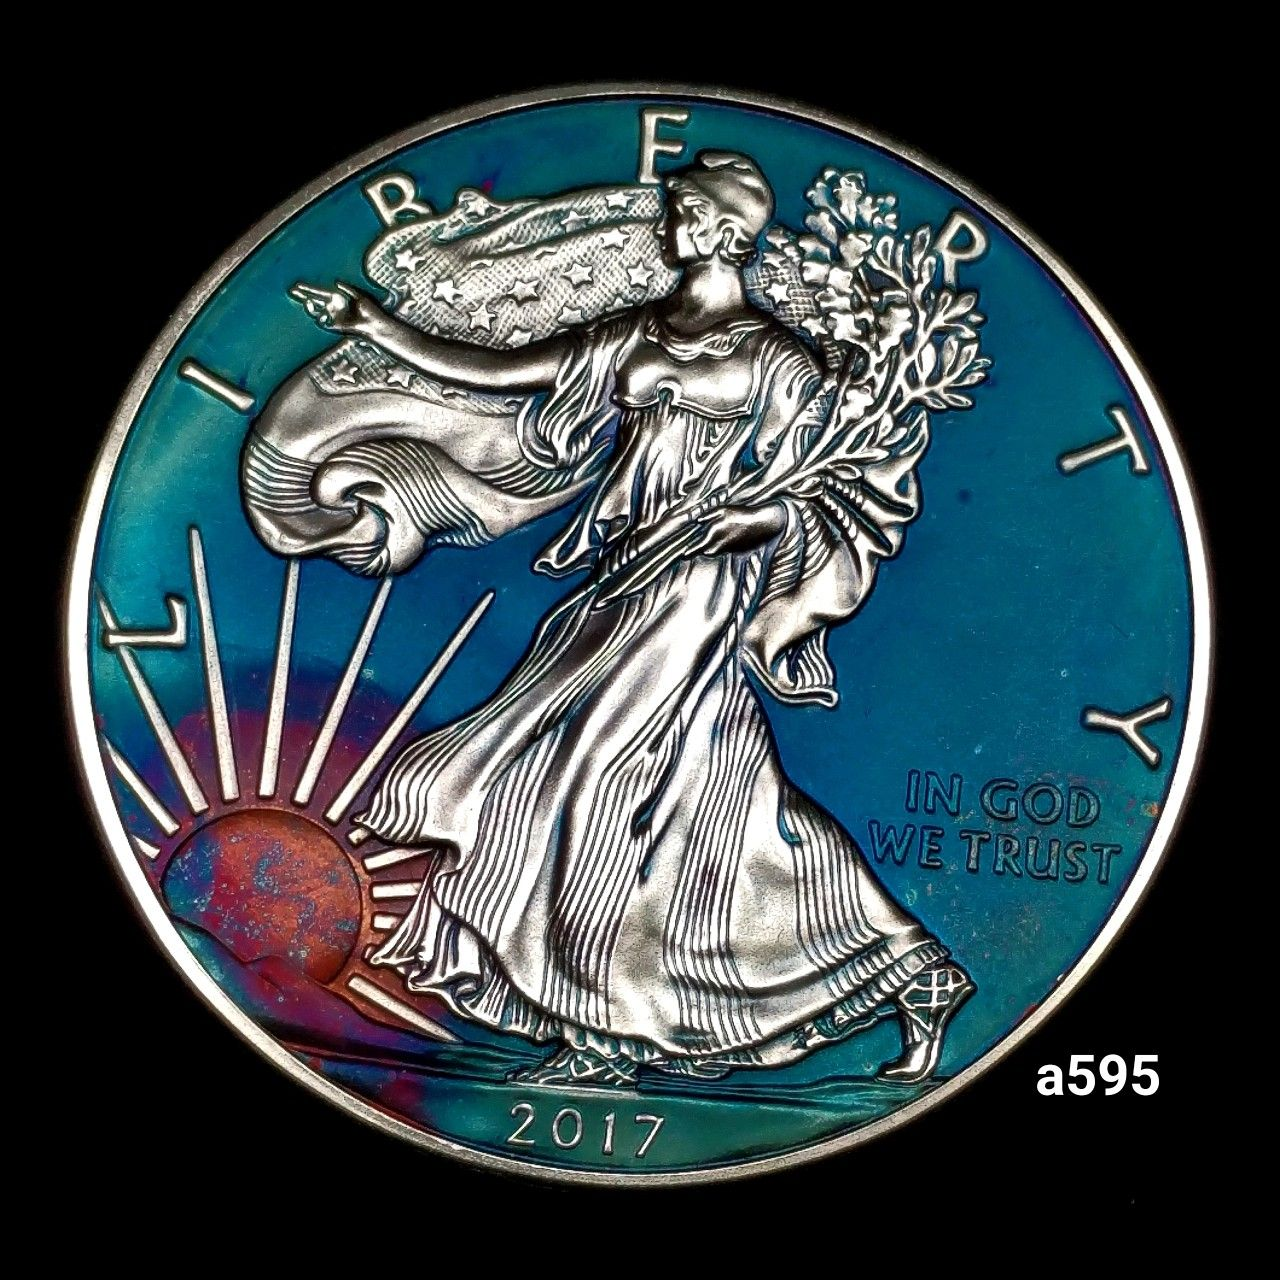 Silver American Eagle Introduced In 1986 Silver American Eagle Coins Weighs In At One Ounce Of Silver 99 9 In 2020 Silver Eagle Coins Gold Eagle Coins Silver Coins